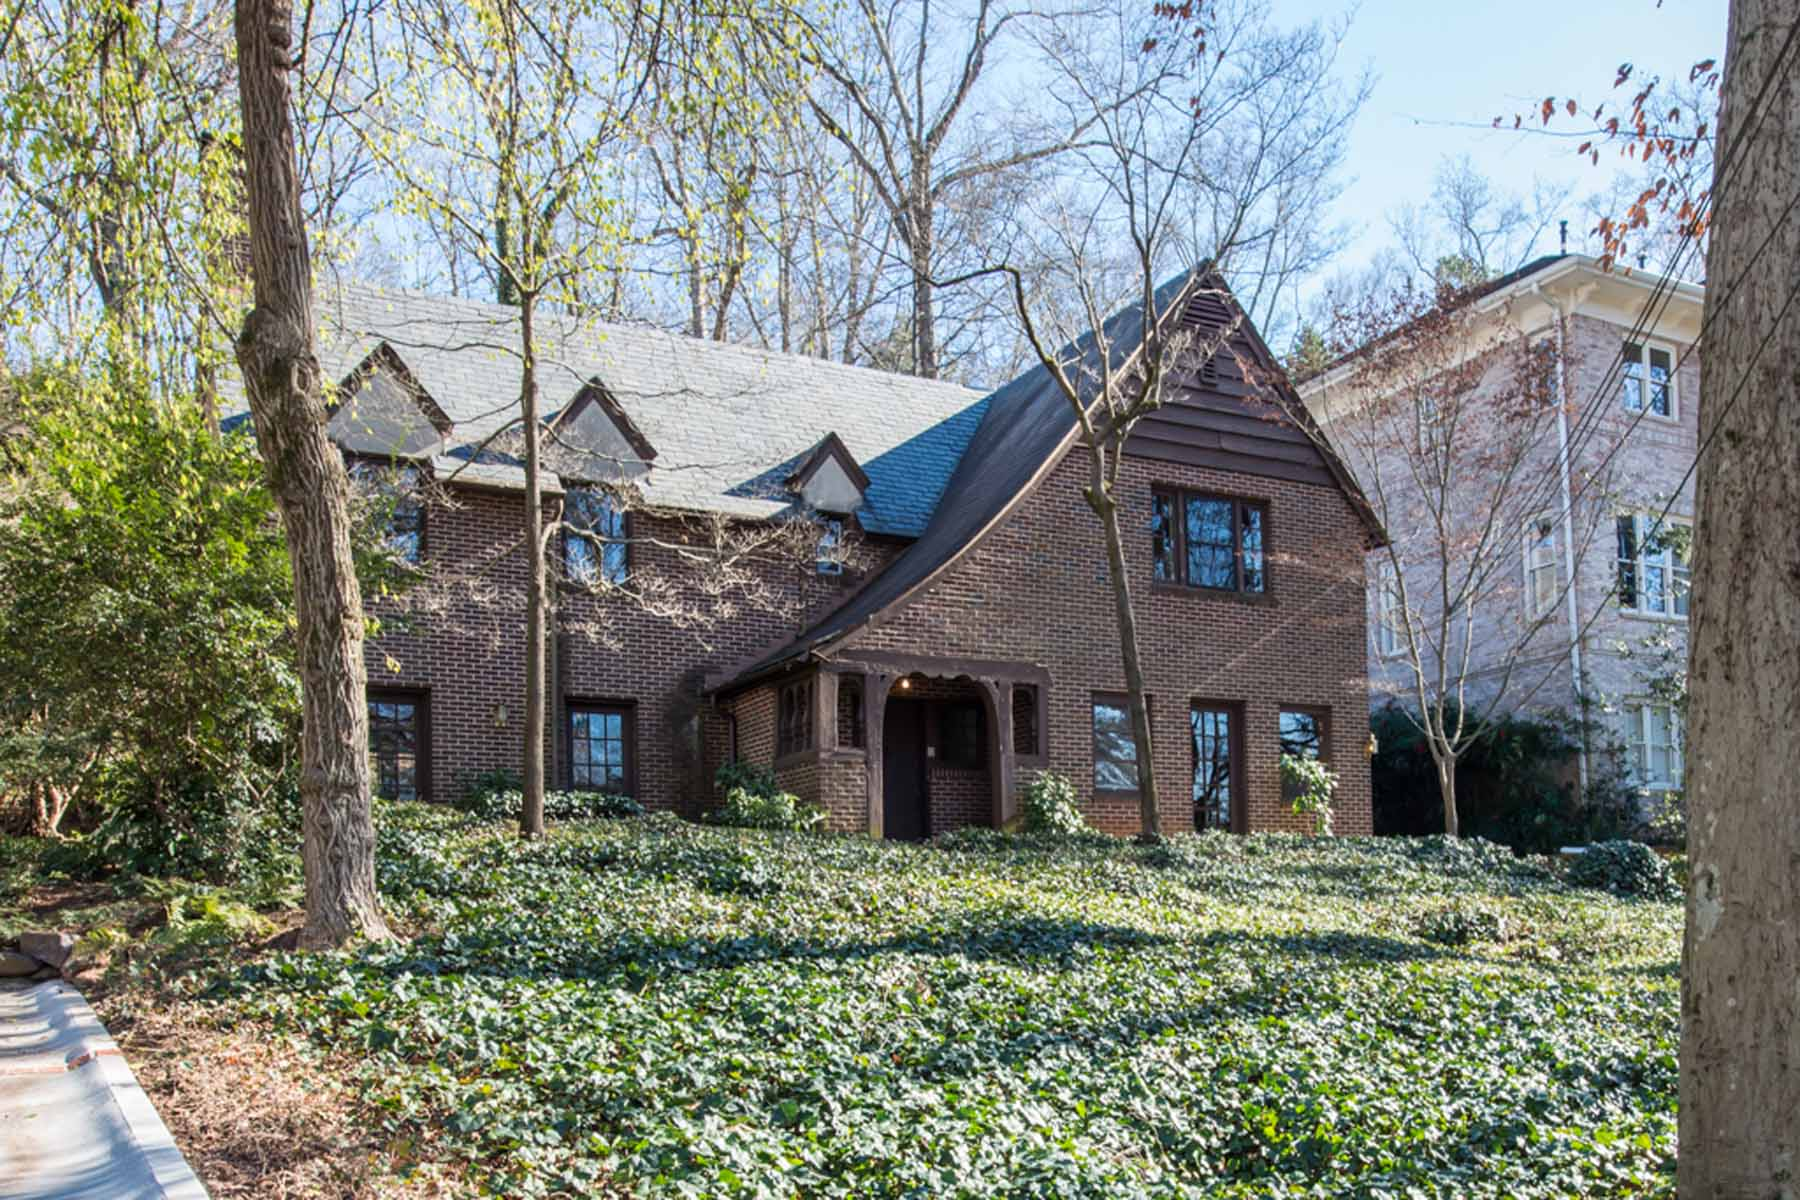 Property For Sale at Historic 1924 Custom Built Tudor on estate lot with authentic Tudor architecture